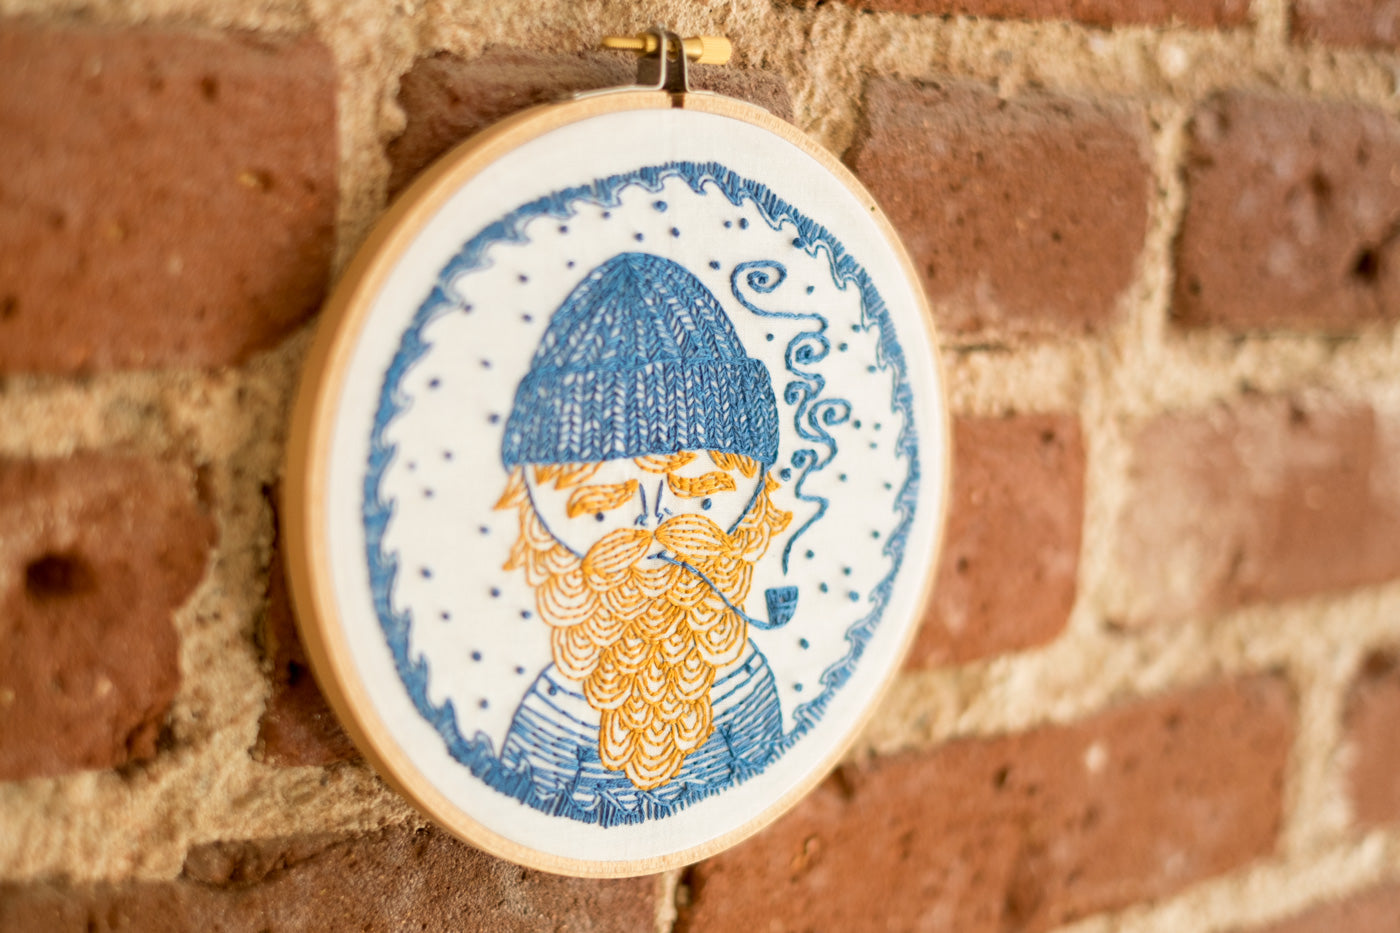 Sea Captain CozyBlue Embroidery Kit